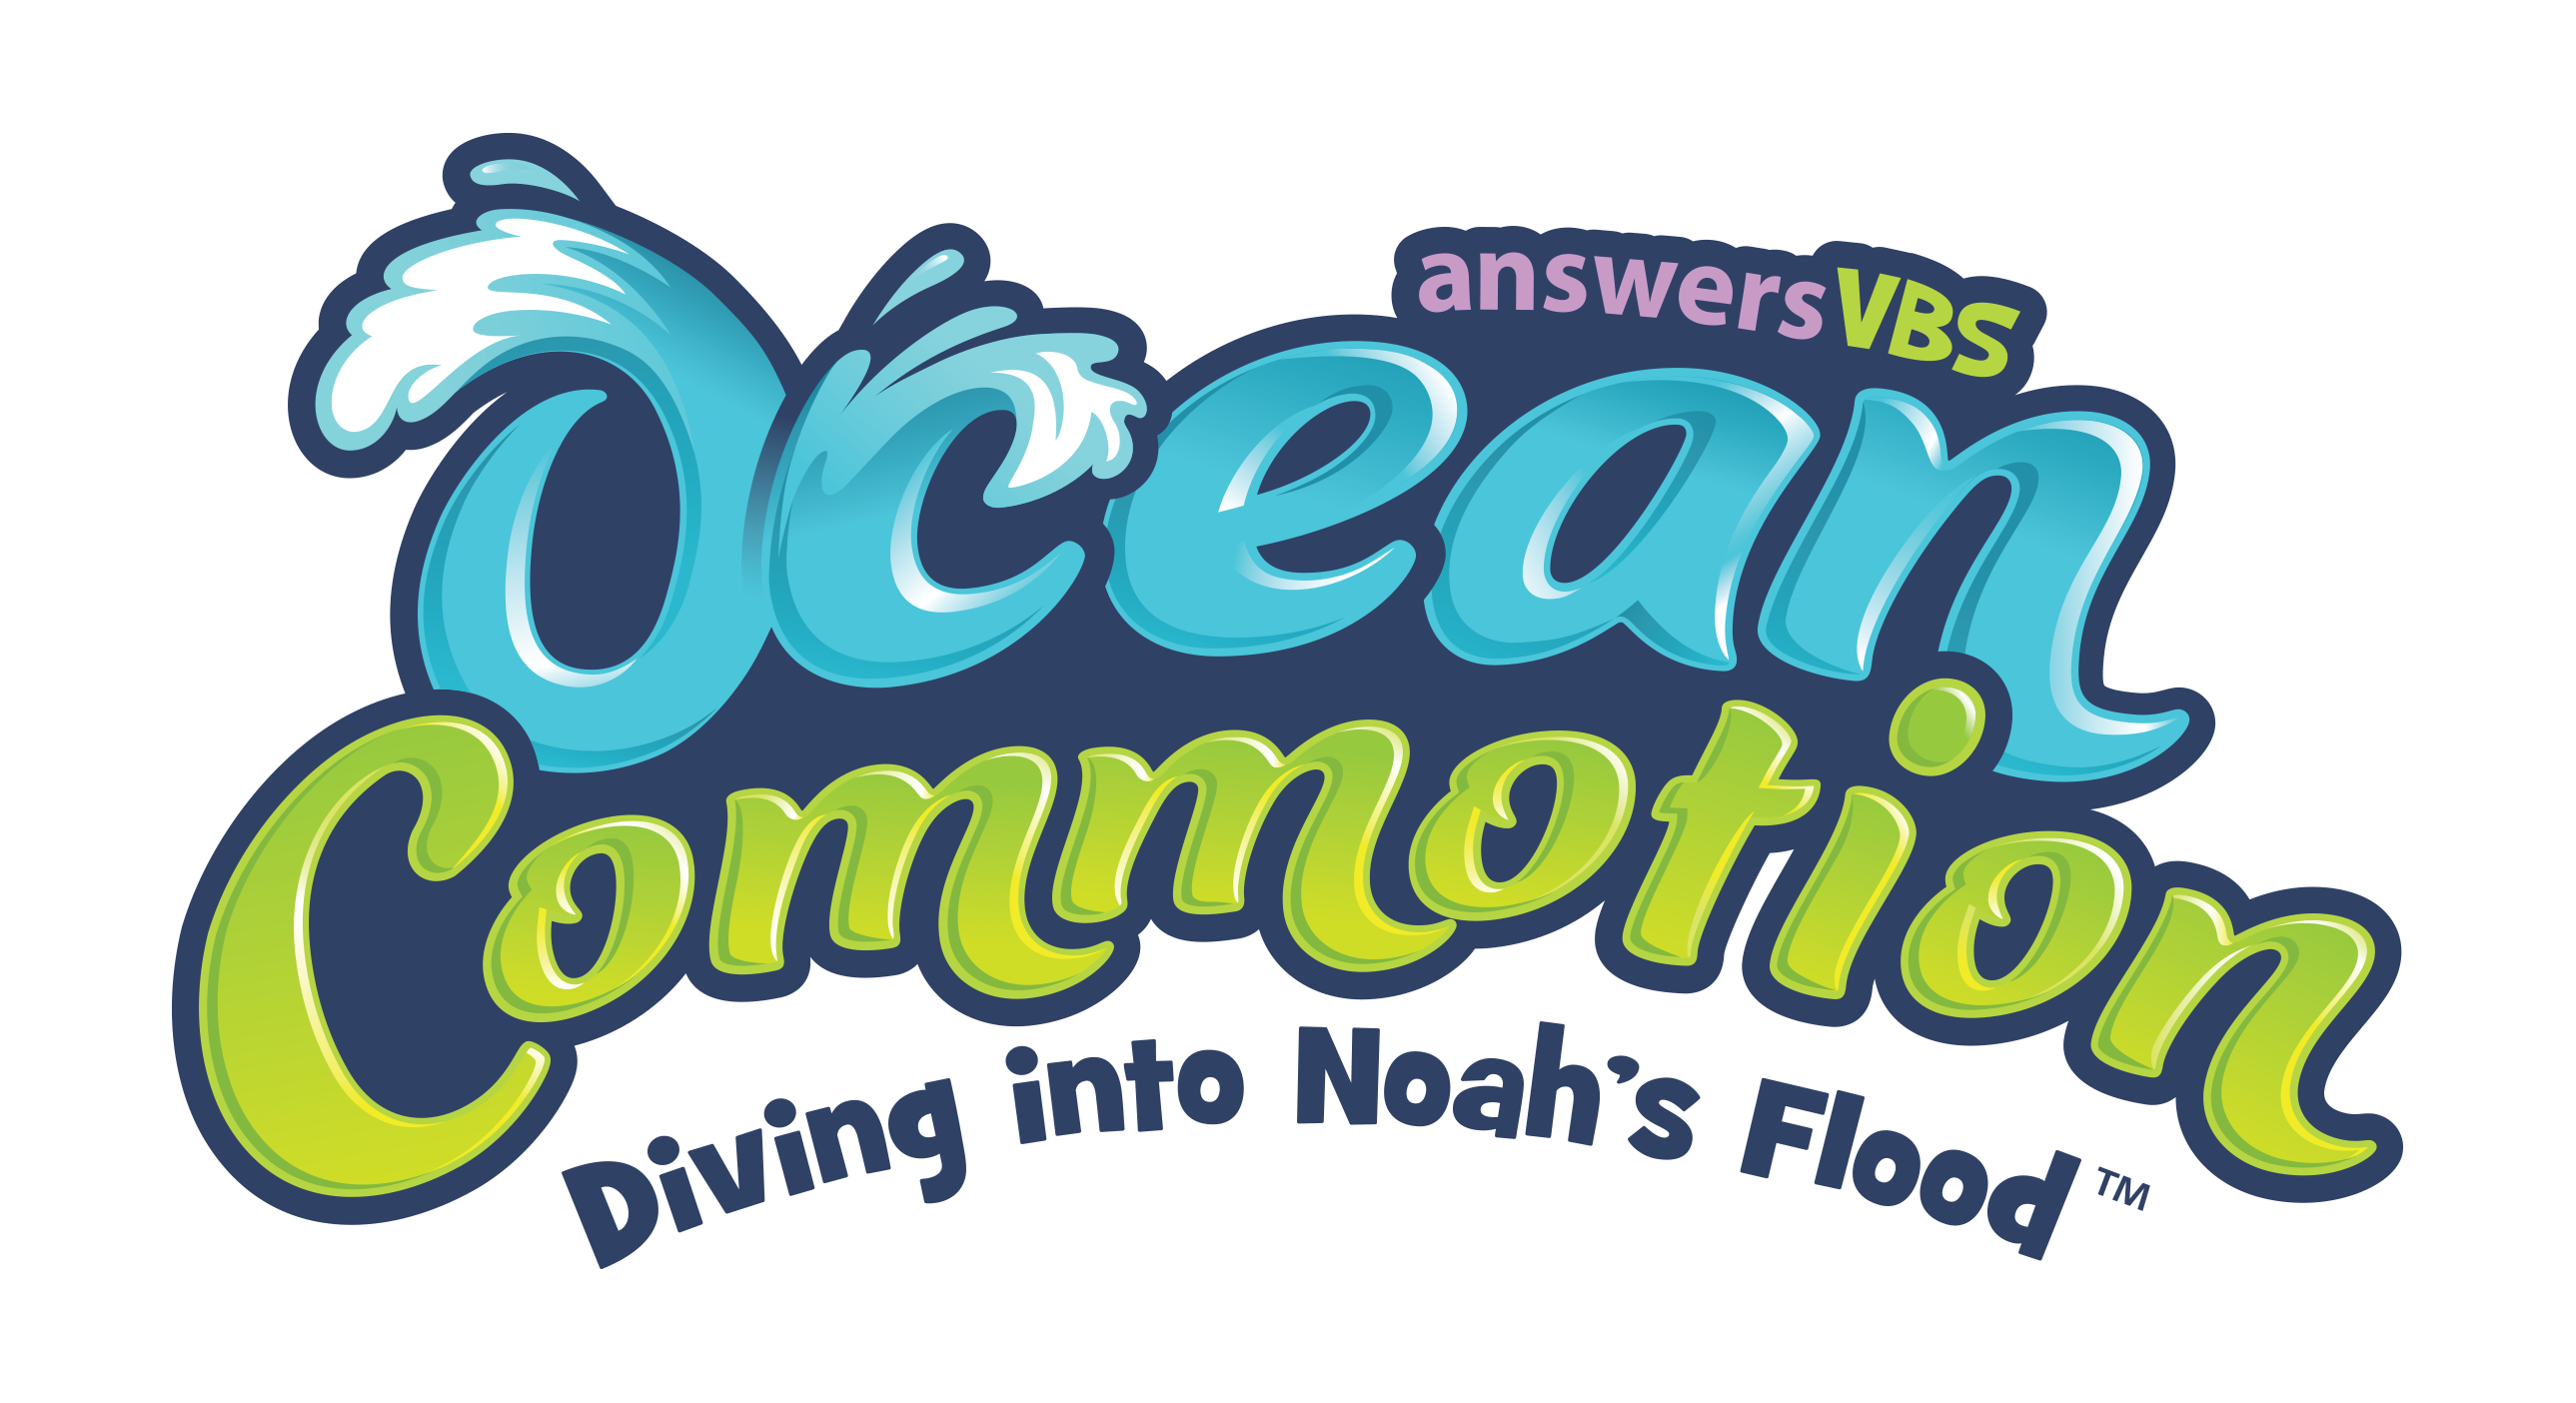 Ocean commotion text logo